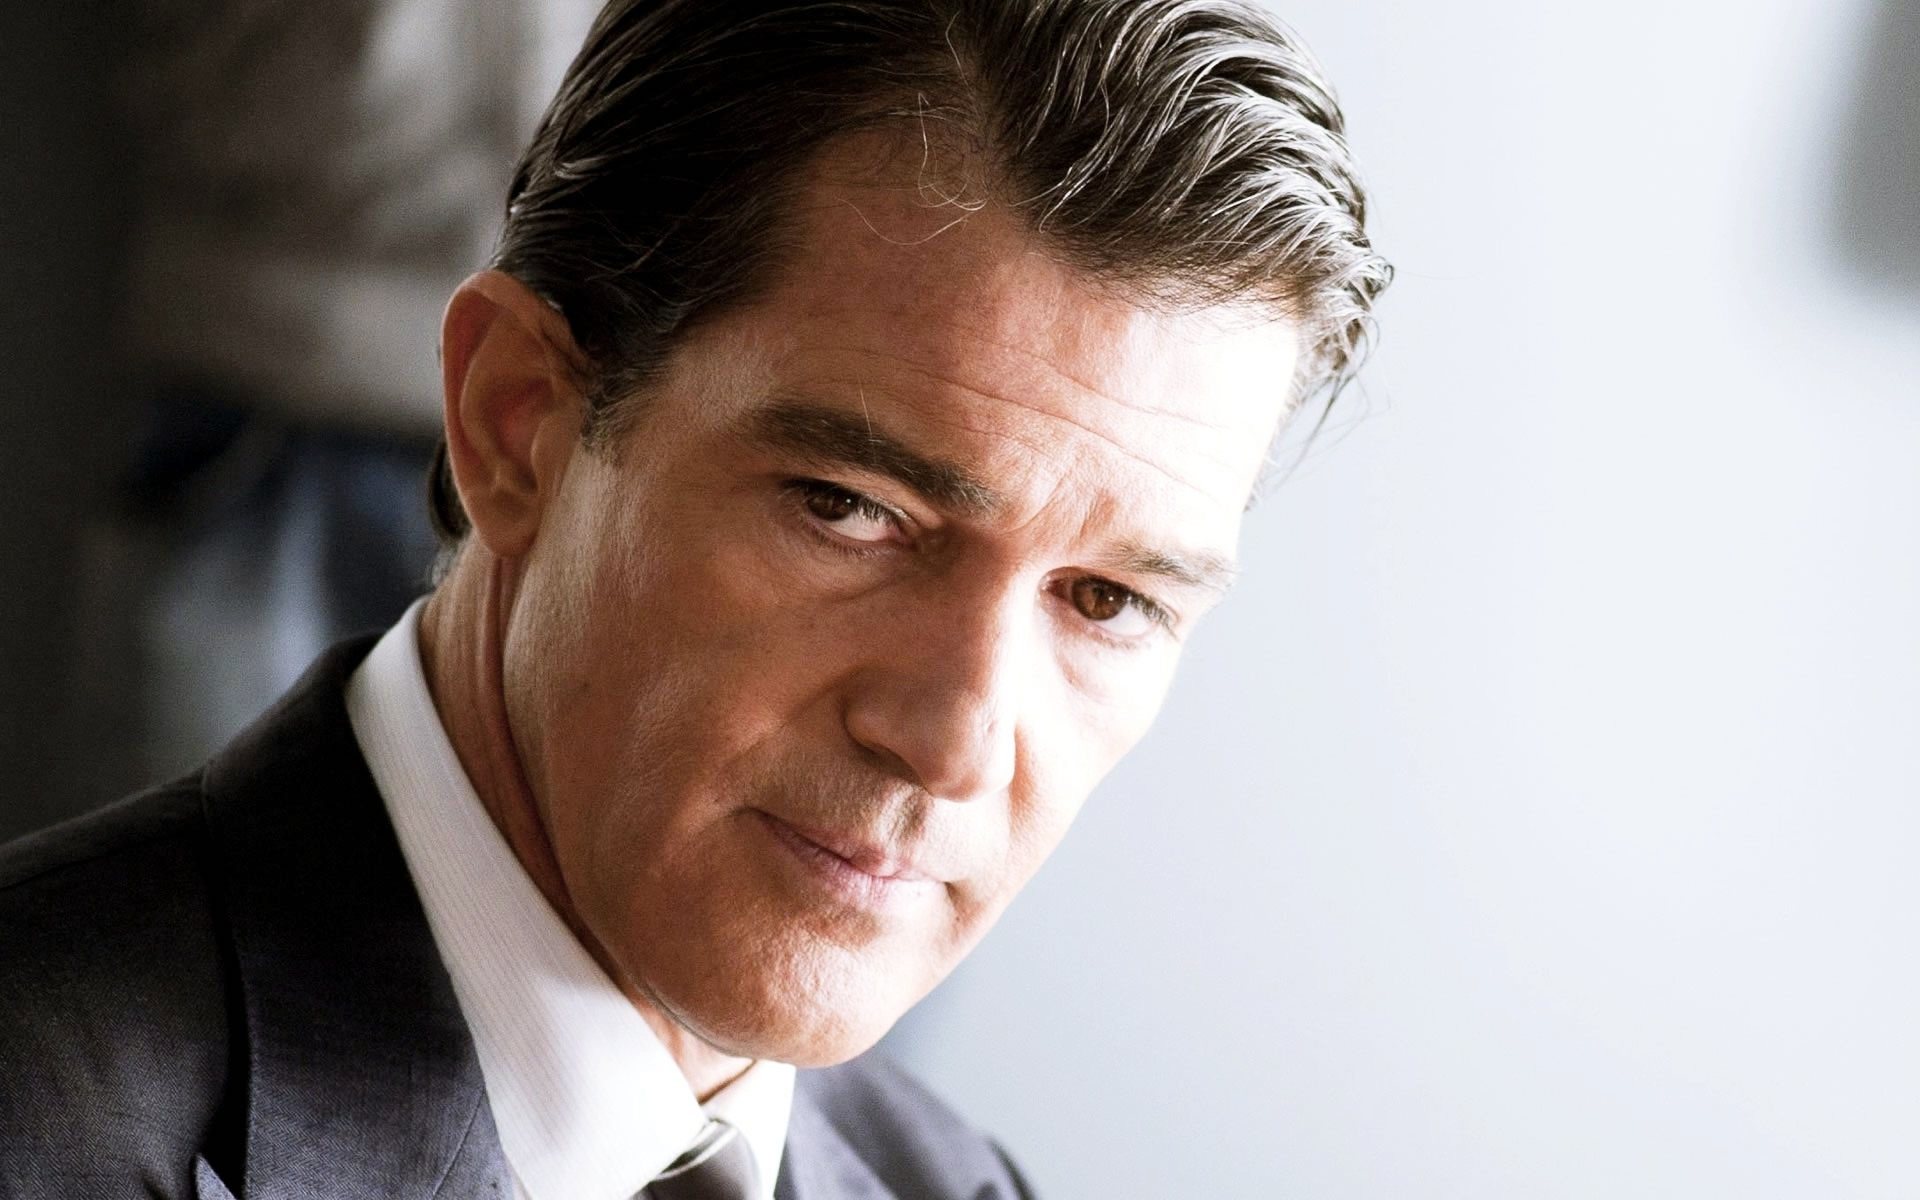 Antonio Banderas Makes it Through Heart Attack ...